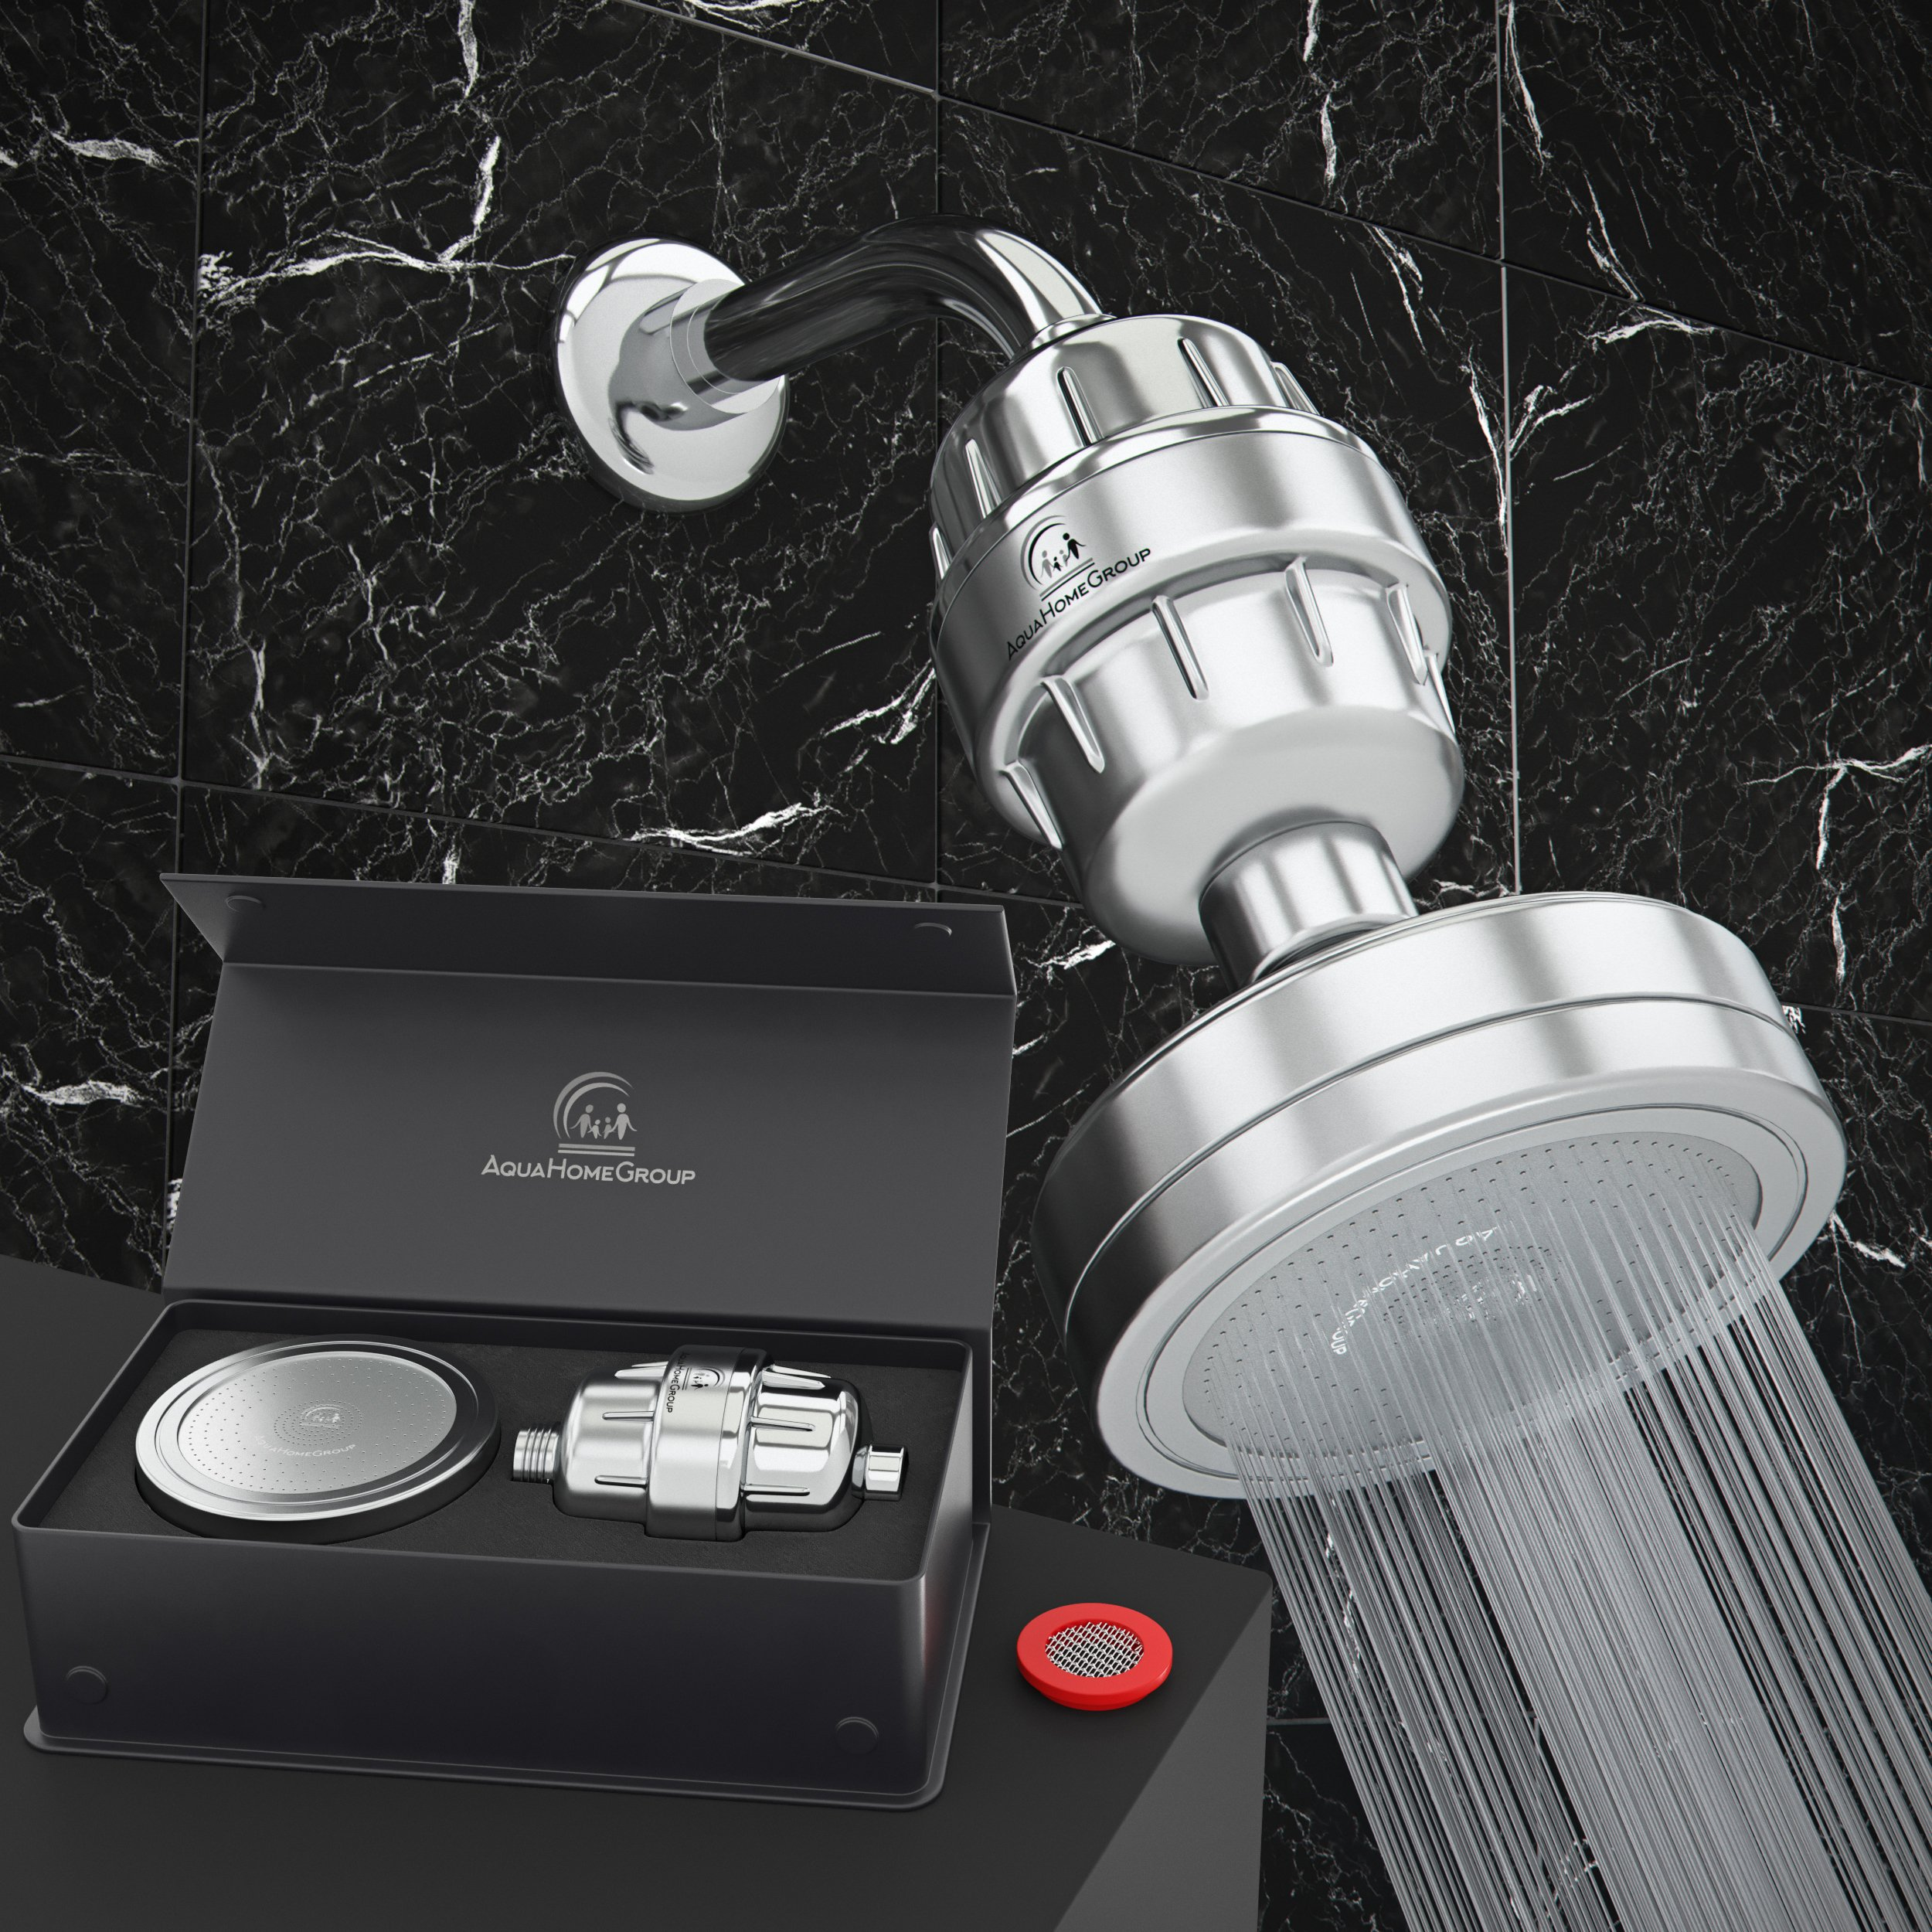 Luxury Filtered Shower Head Set Filter (Metal) Cartridge Vitamin C and E + 15-Stage Shower Water Filters - Universal Shower System - Helps Dry Skin & Hair Loss - Removes Chlorine & Sediments